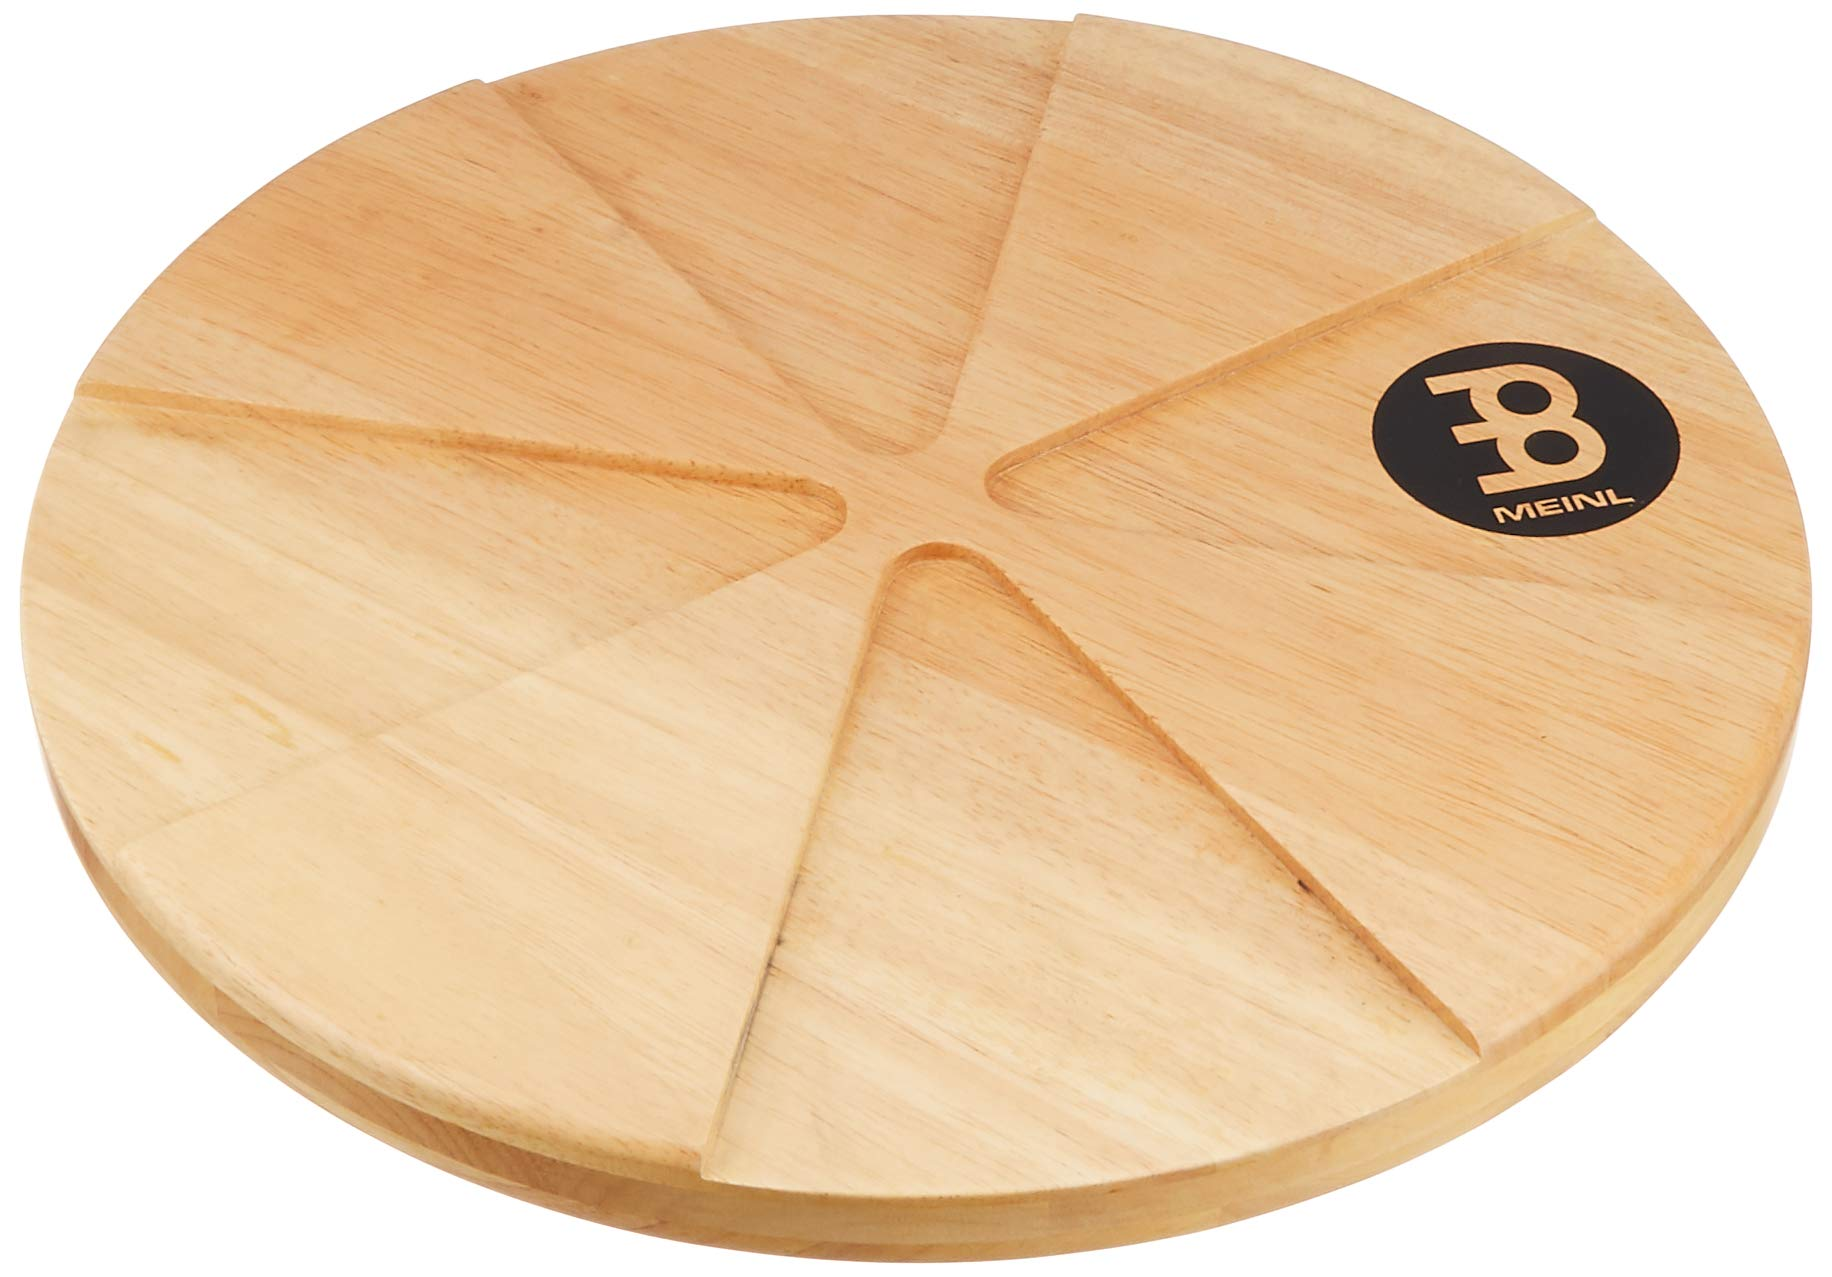 Meinl Percussion CSP Wood Conga Sound Plate